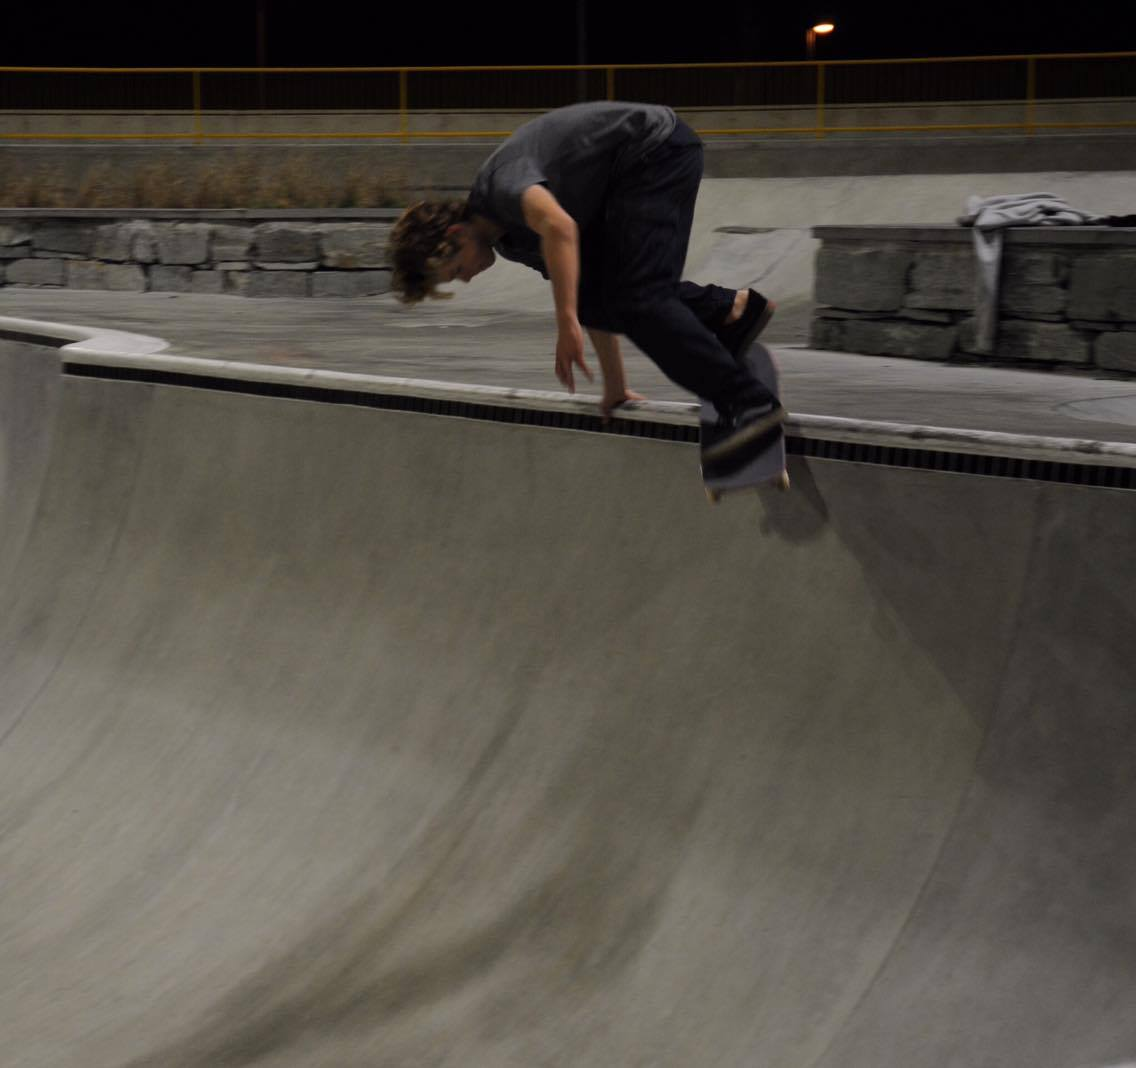 Bs smith grind, photo: unknown credits coming